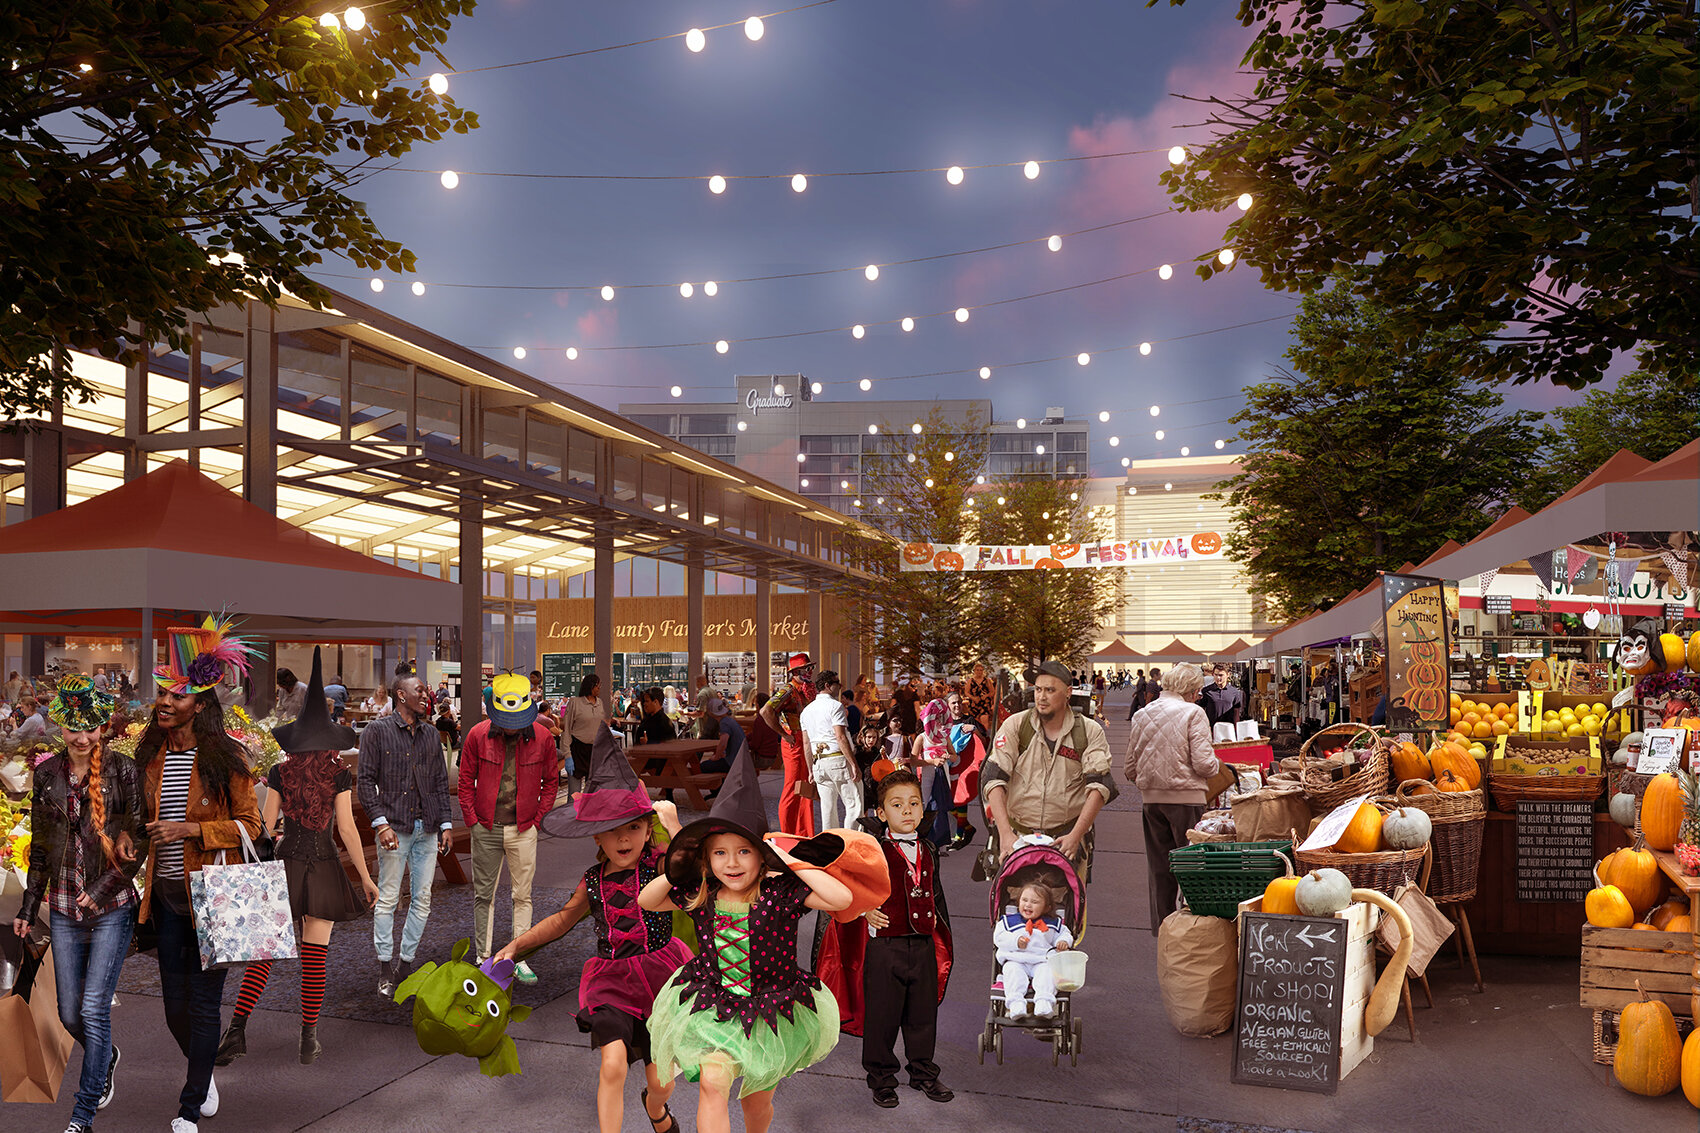 This illustration depicts the general feel of the space that would be accompanying the permanent Farmer's Market. The festive vibe is just so much fun.